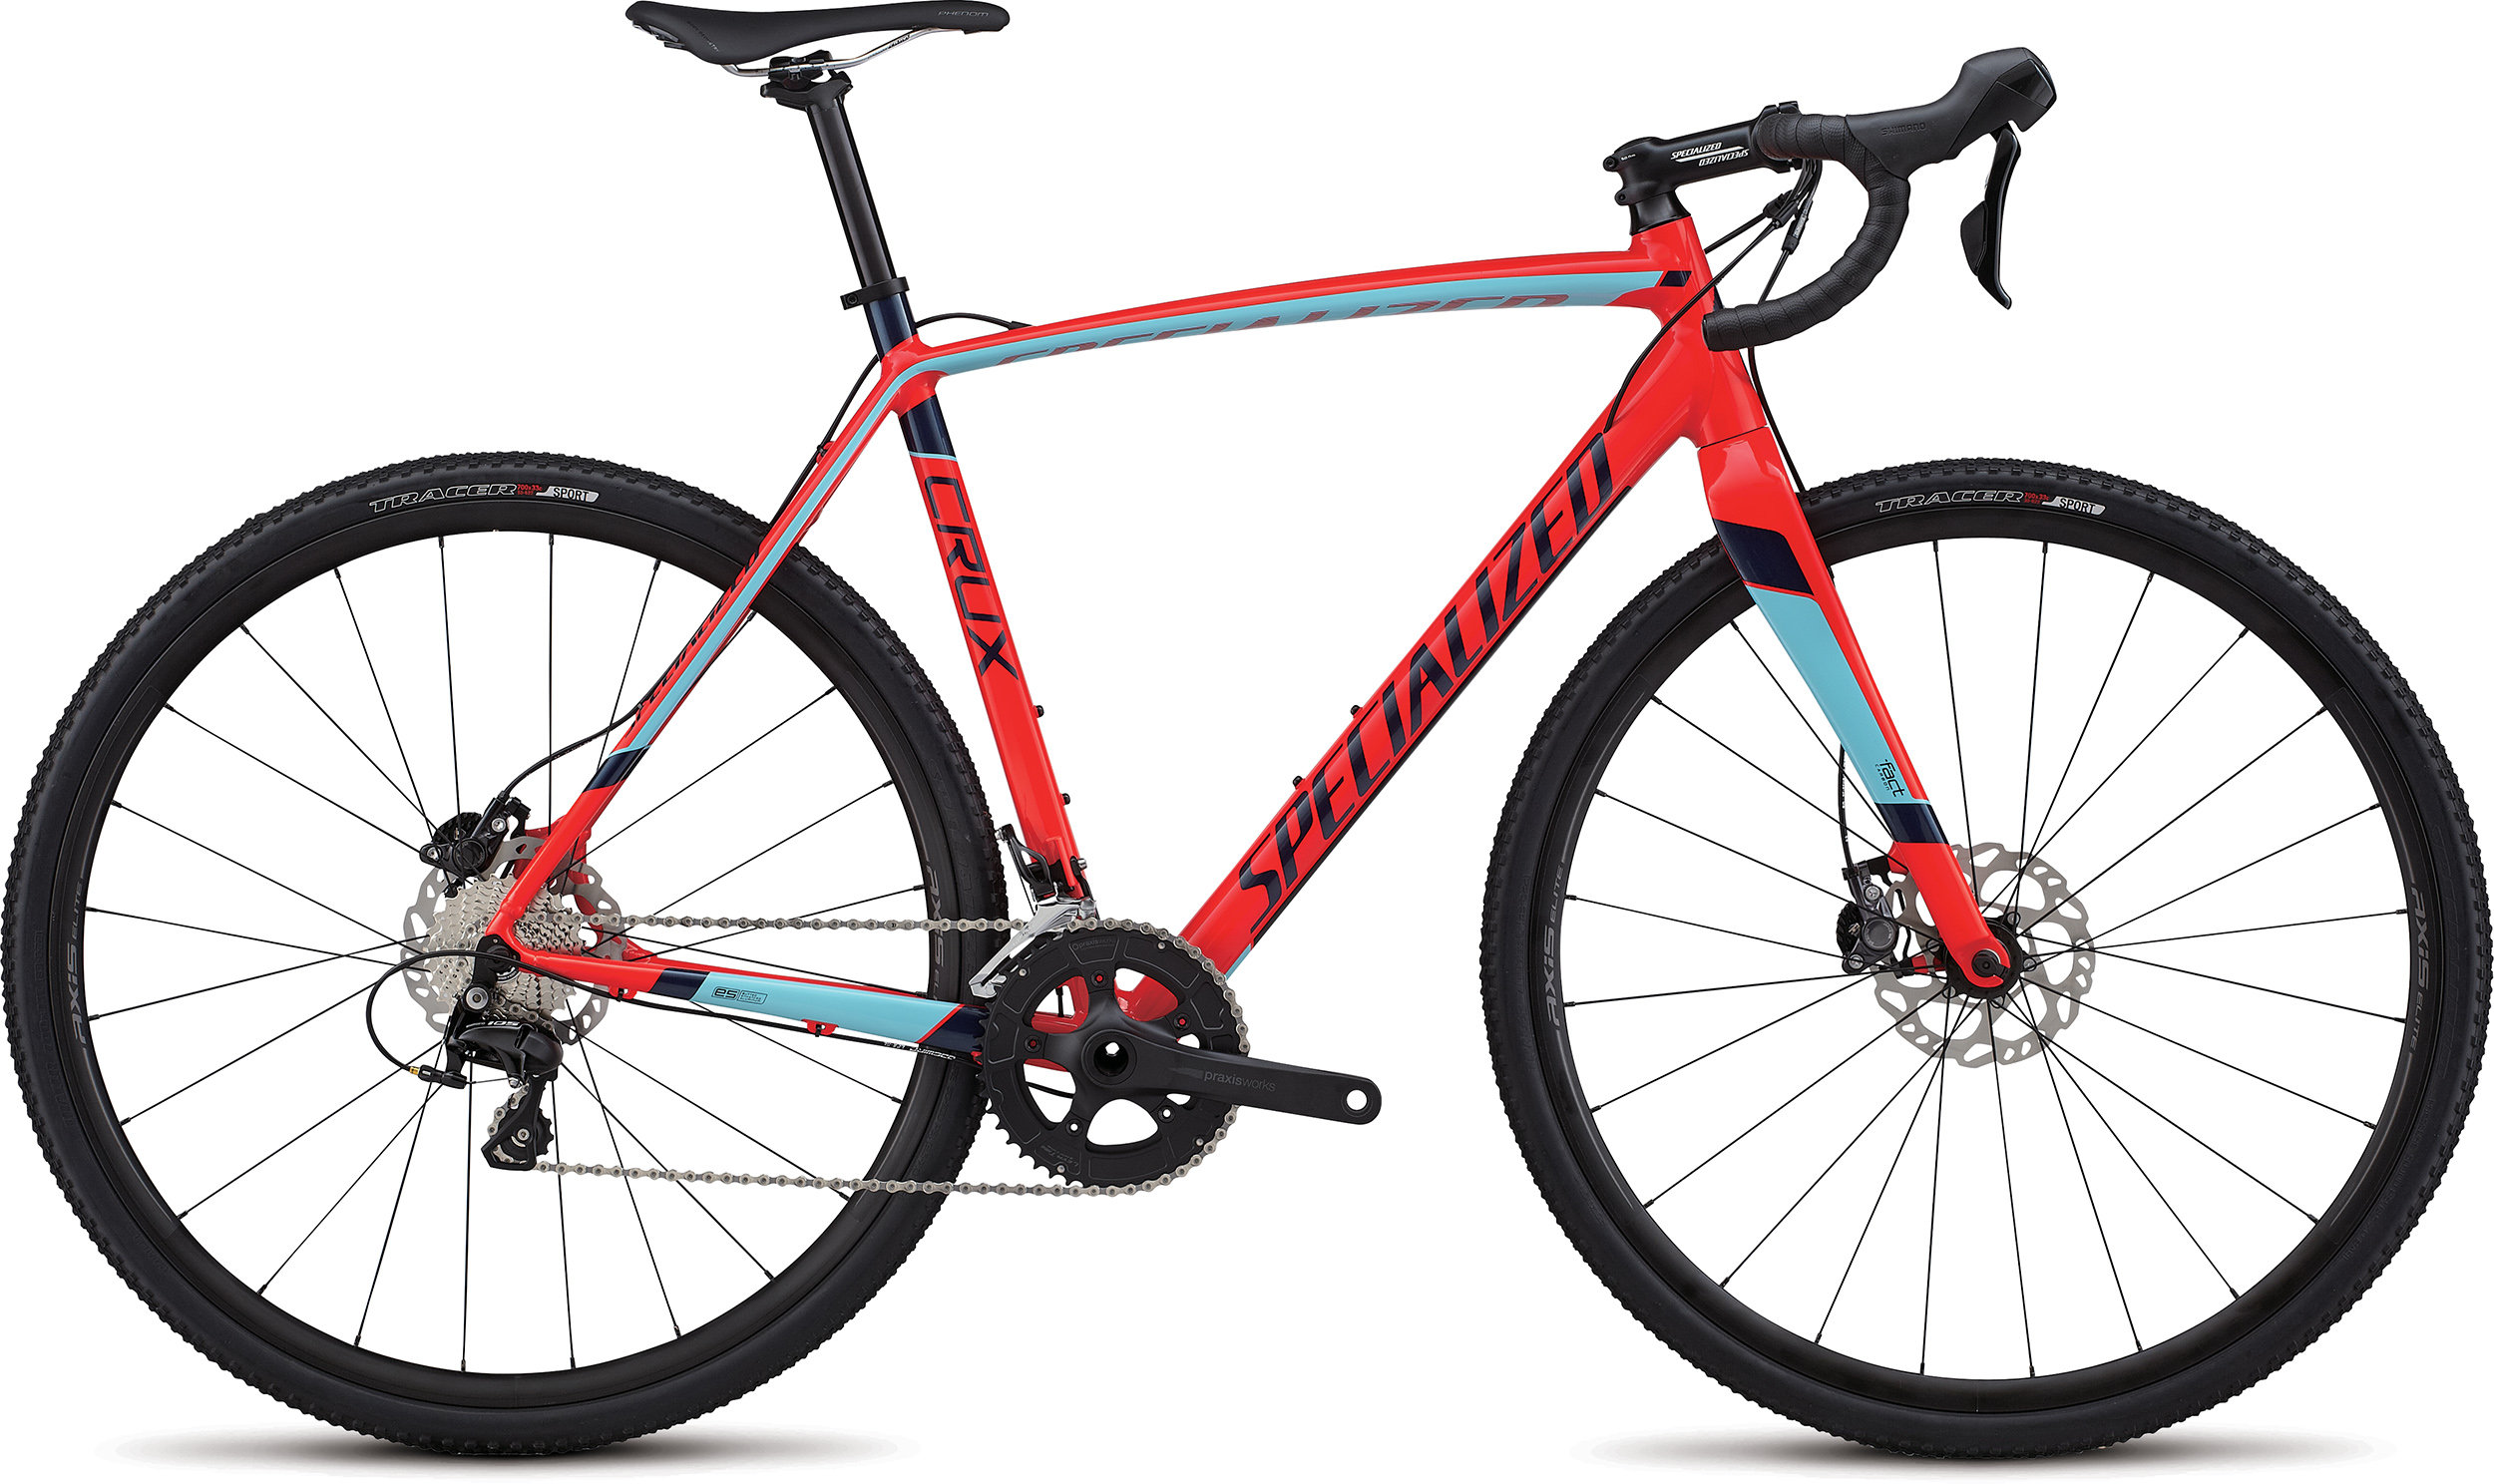 Specialized CruX Sport E5 GLOSS ROCKET RED/ LIGHT BLUE/ NAVY 61 - Bike Maniac